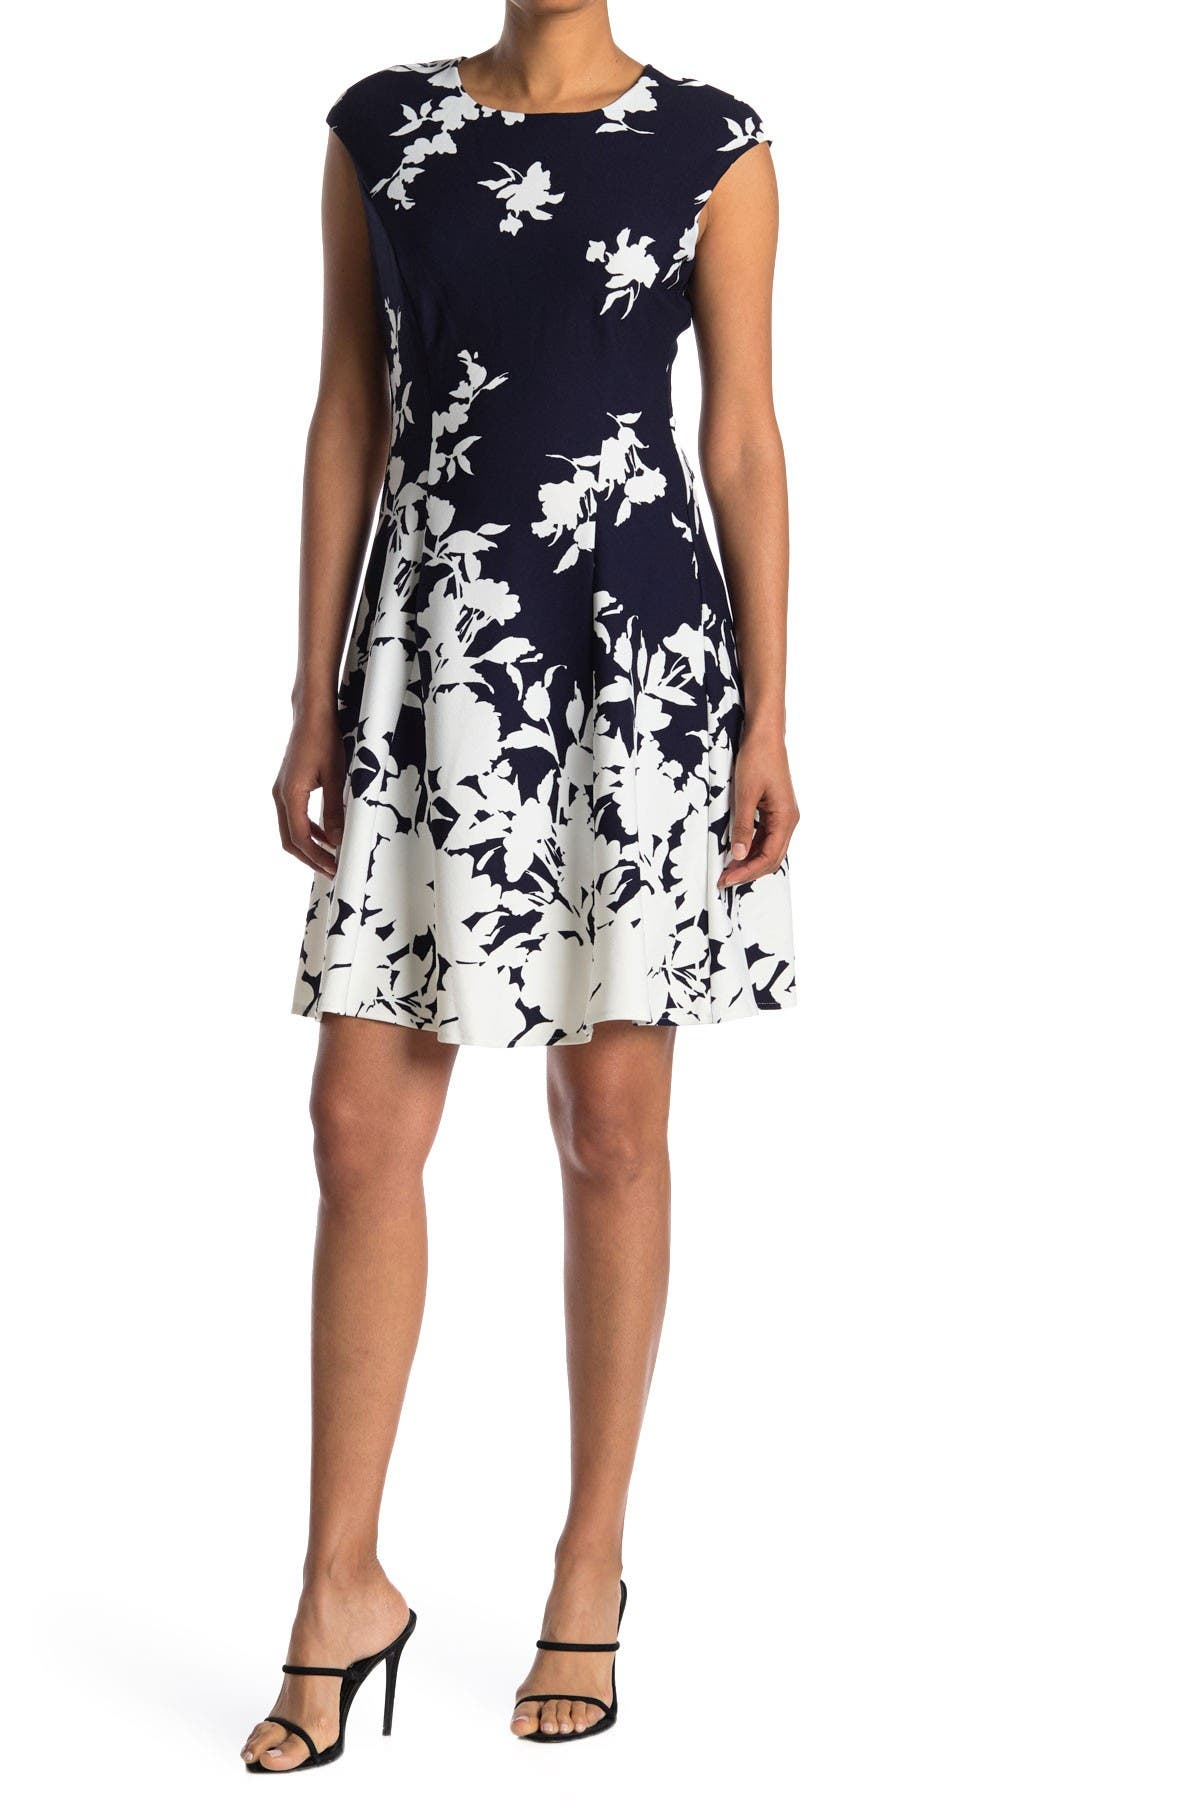 Image of London Times Monotone Floral Print Fit and Flare Dress